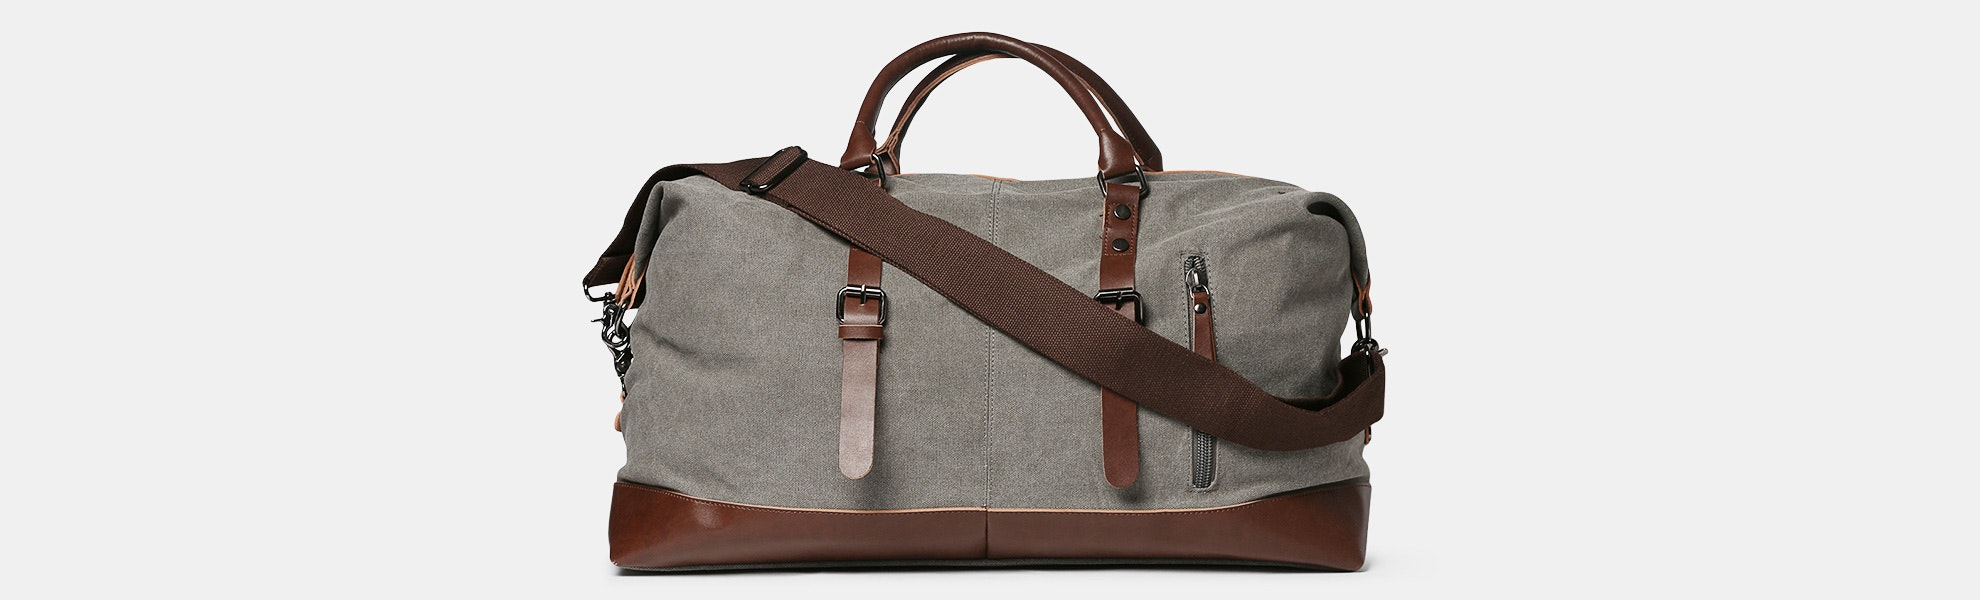 Travables The Duffy Duffel Bag